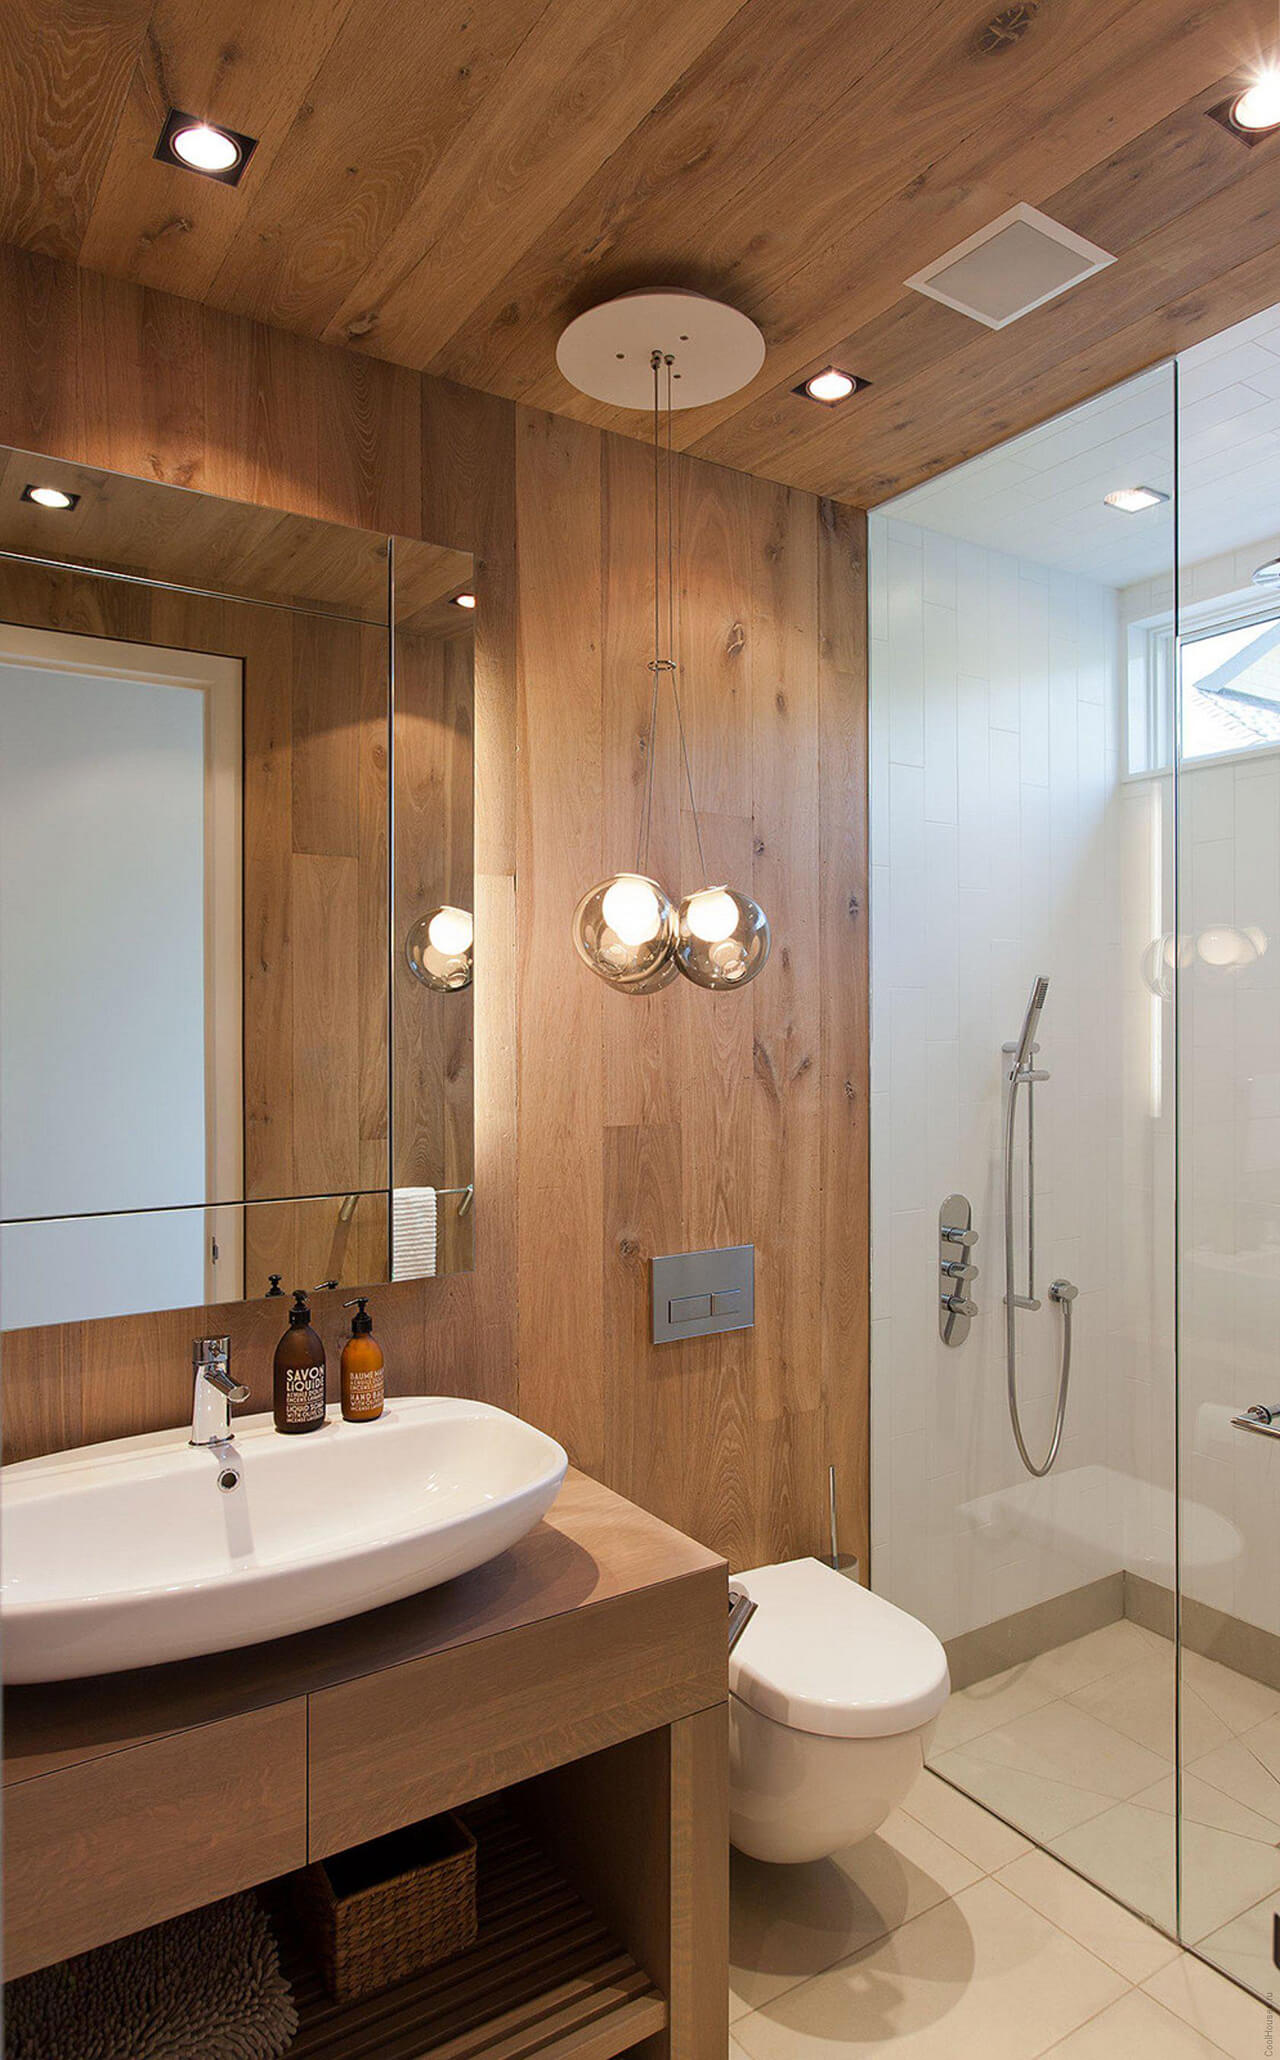 2021 Modern Bathroom Design 69 Great Ideas To Try